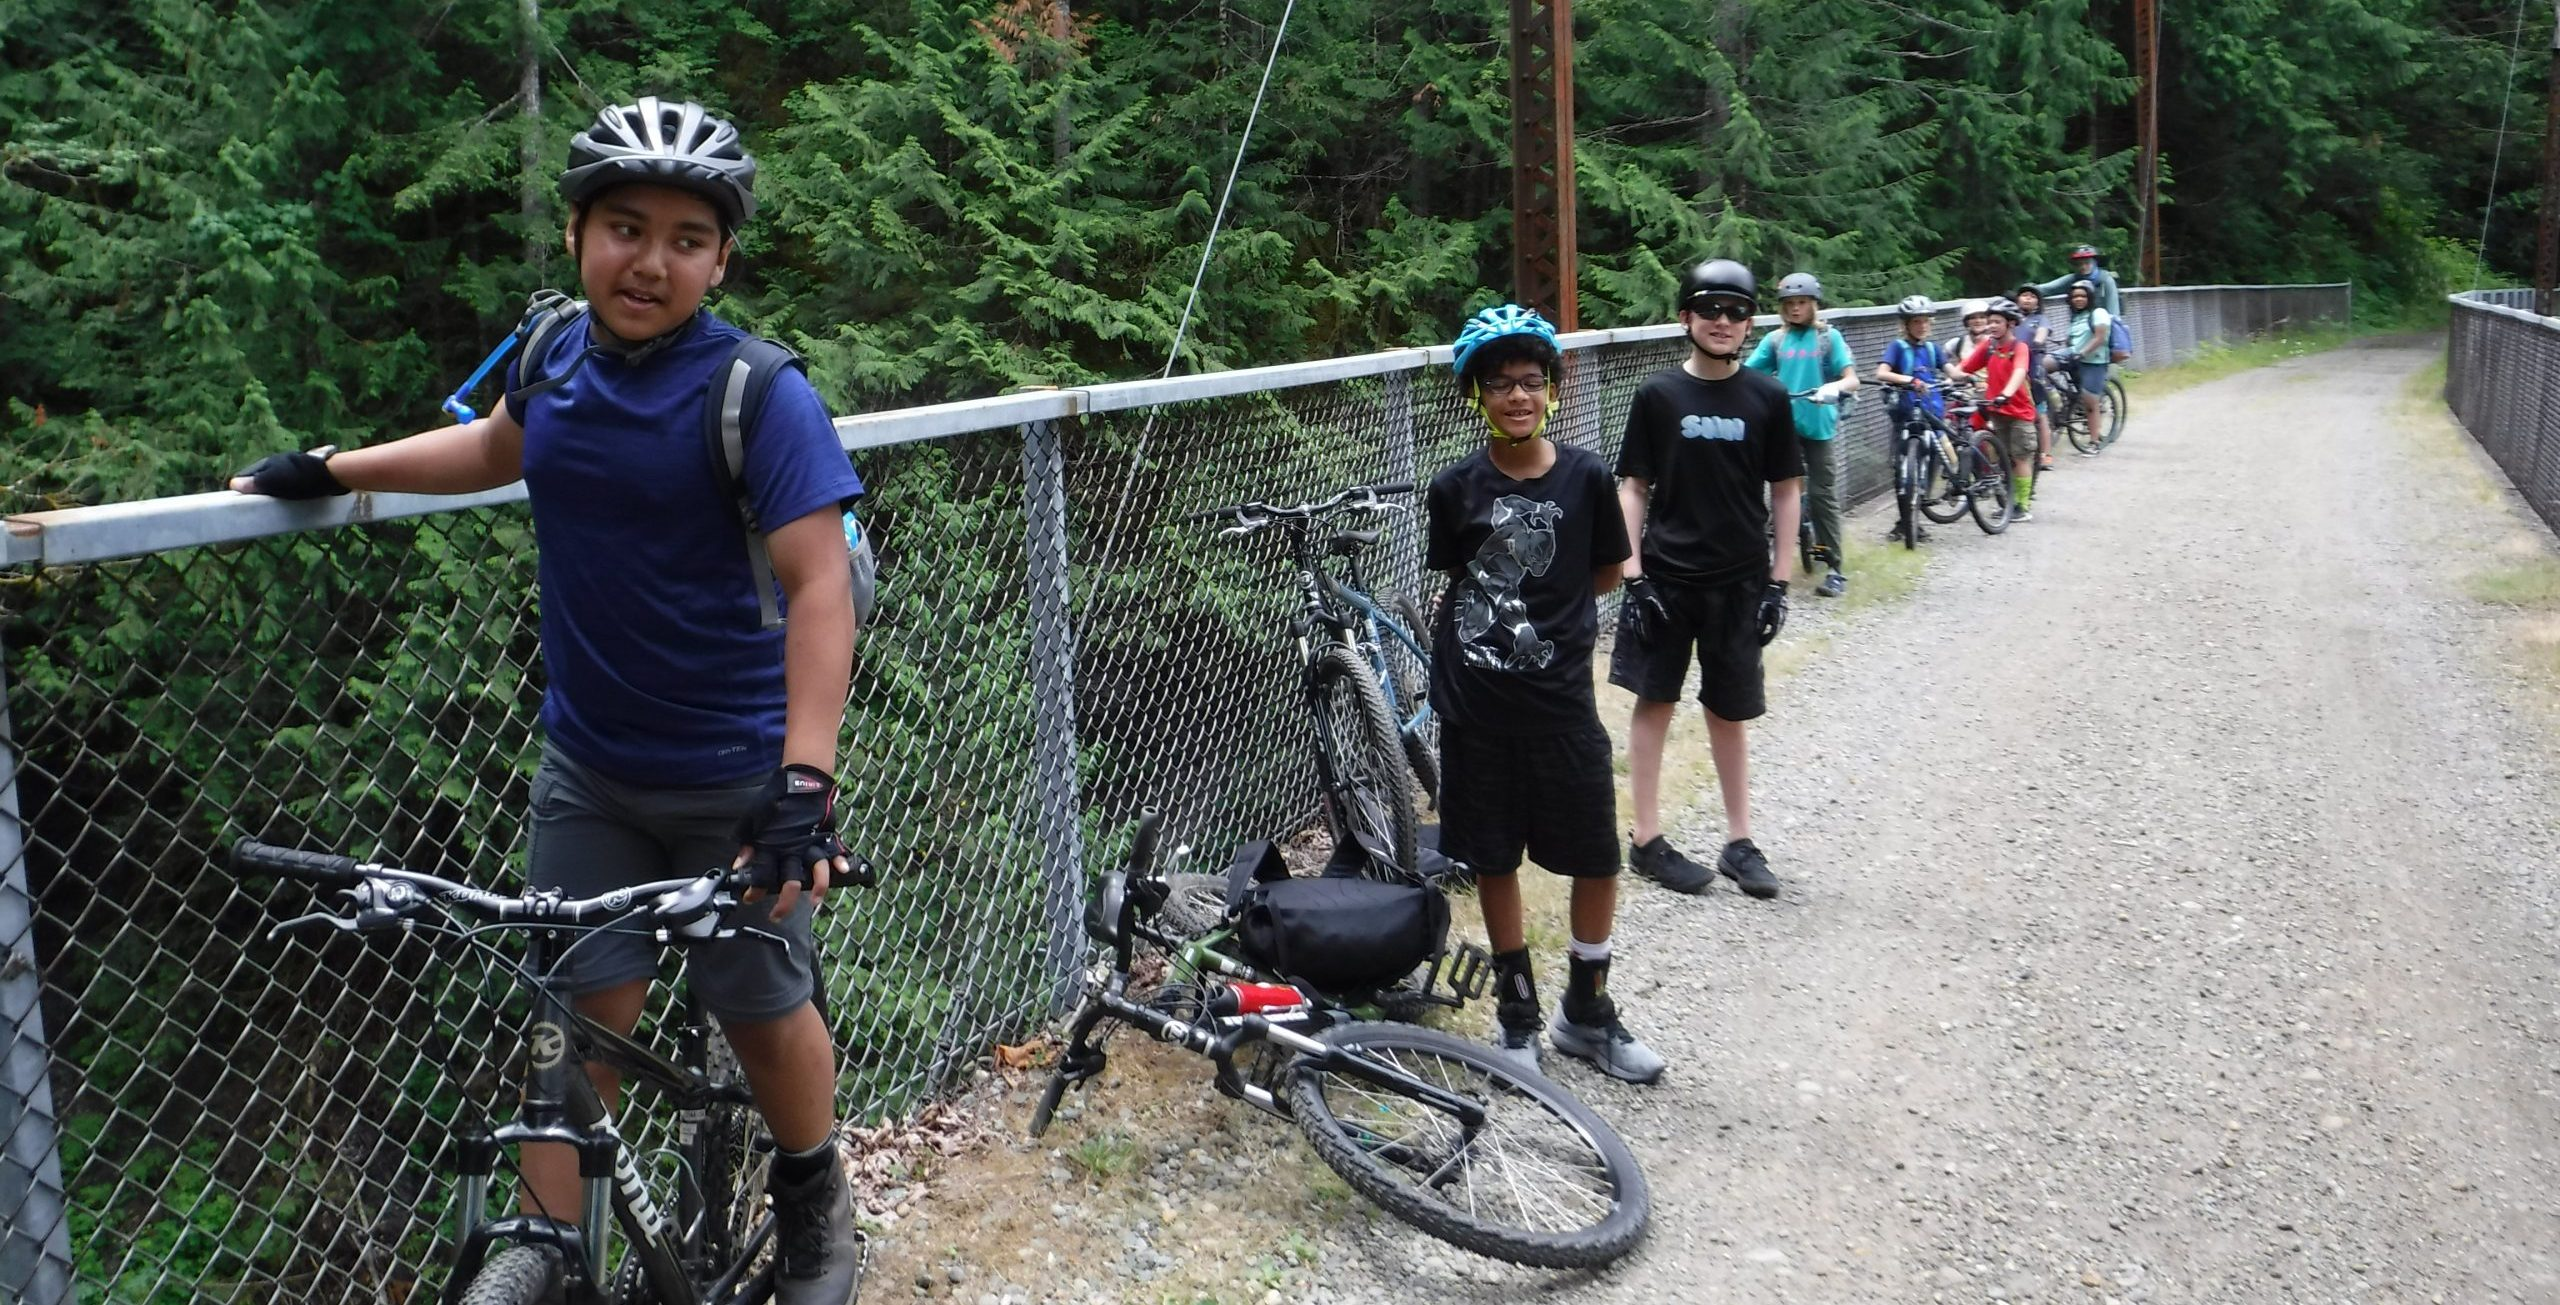 Ten youth riders with their bicycles lined up against a chain link fence bordering a gravel path